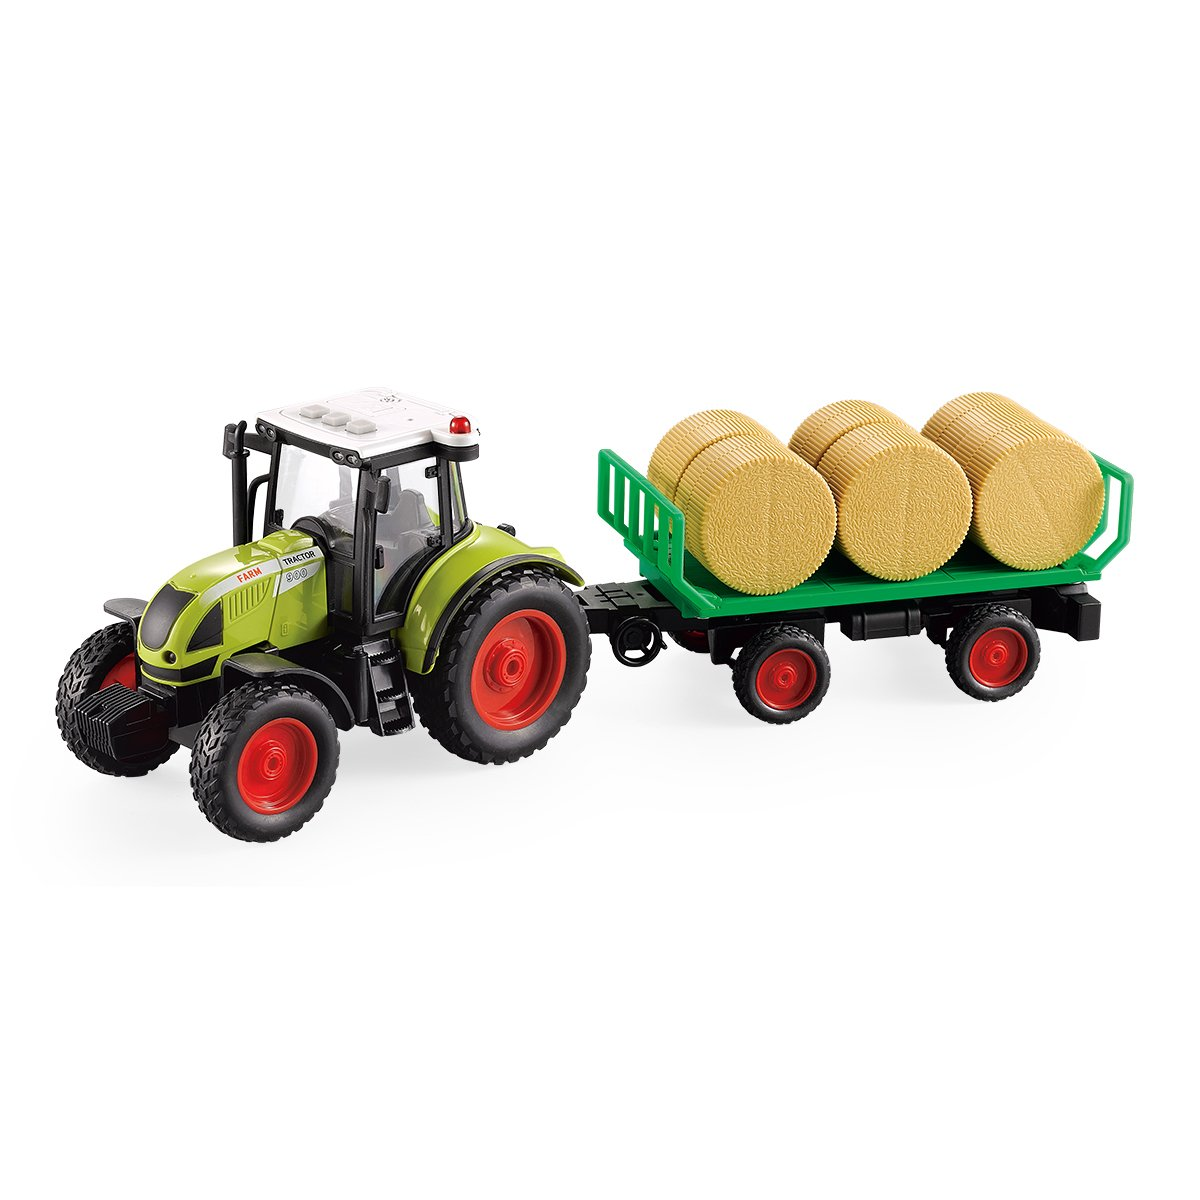 Tractor cu transport de baloturi Cool Machines